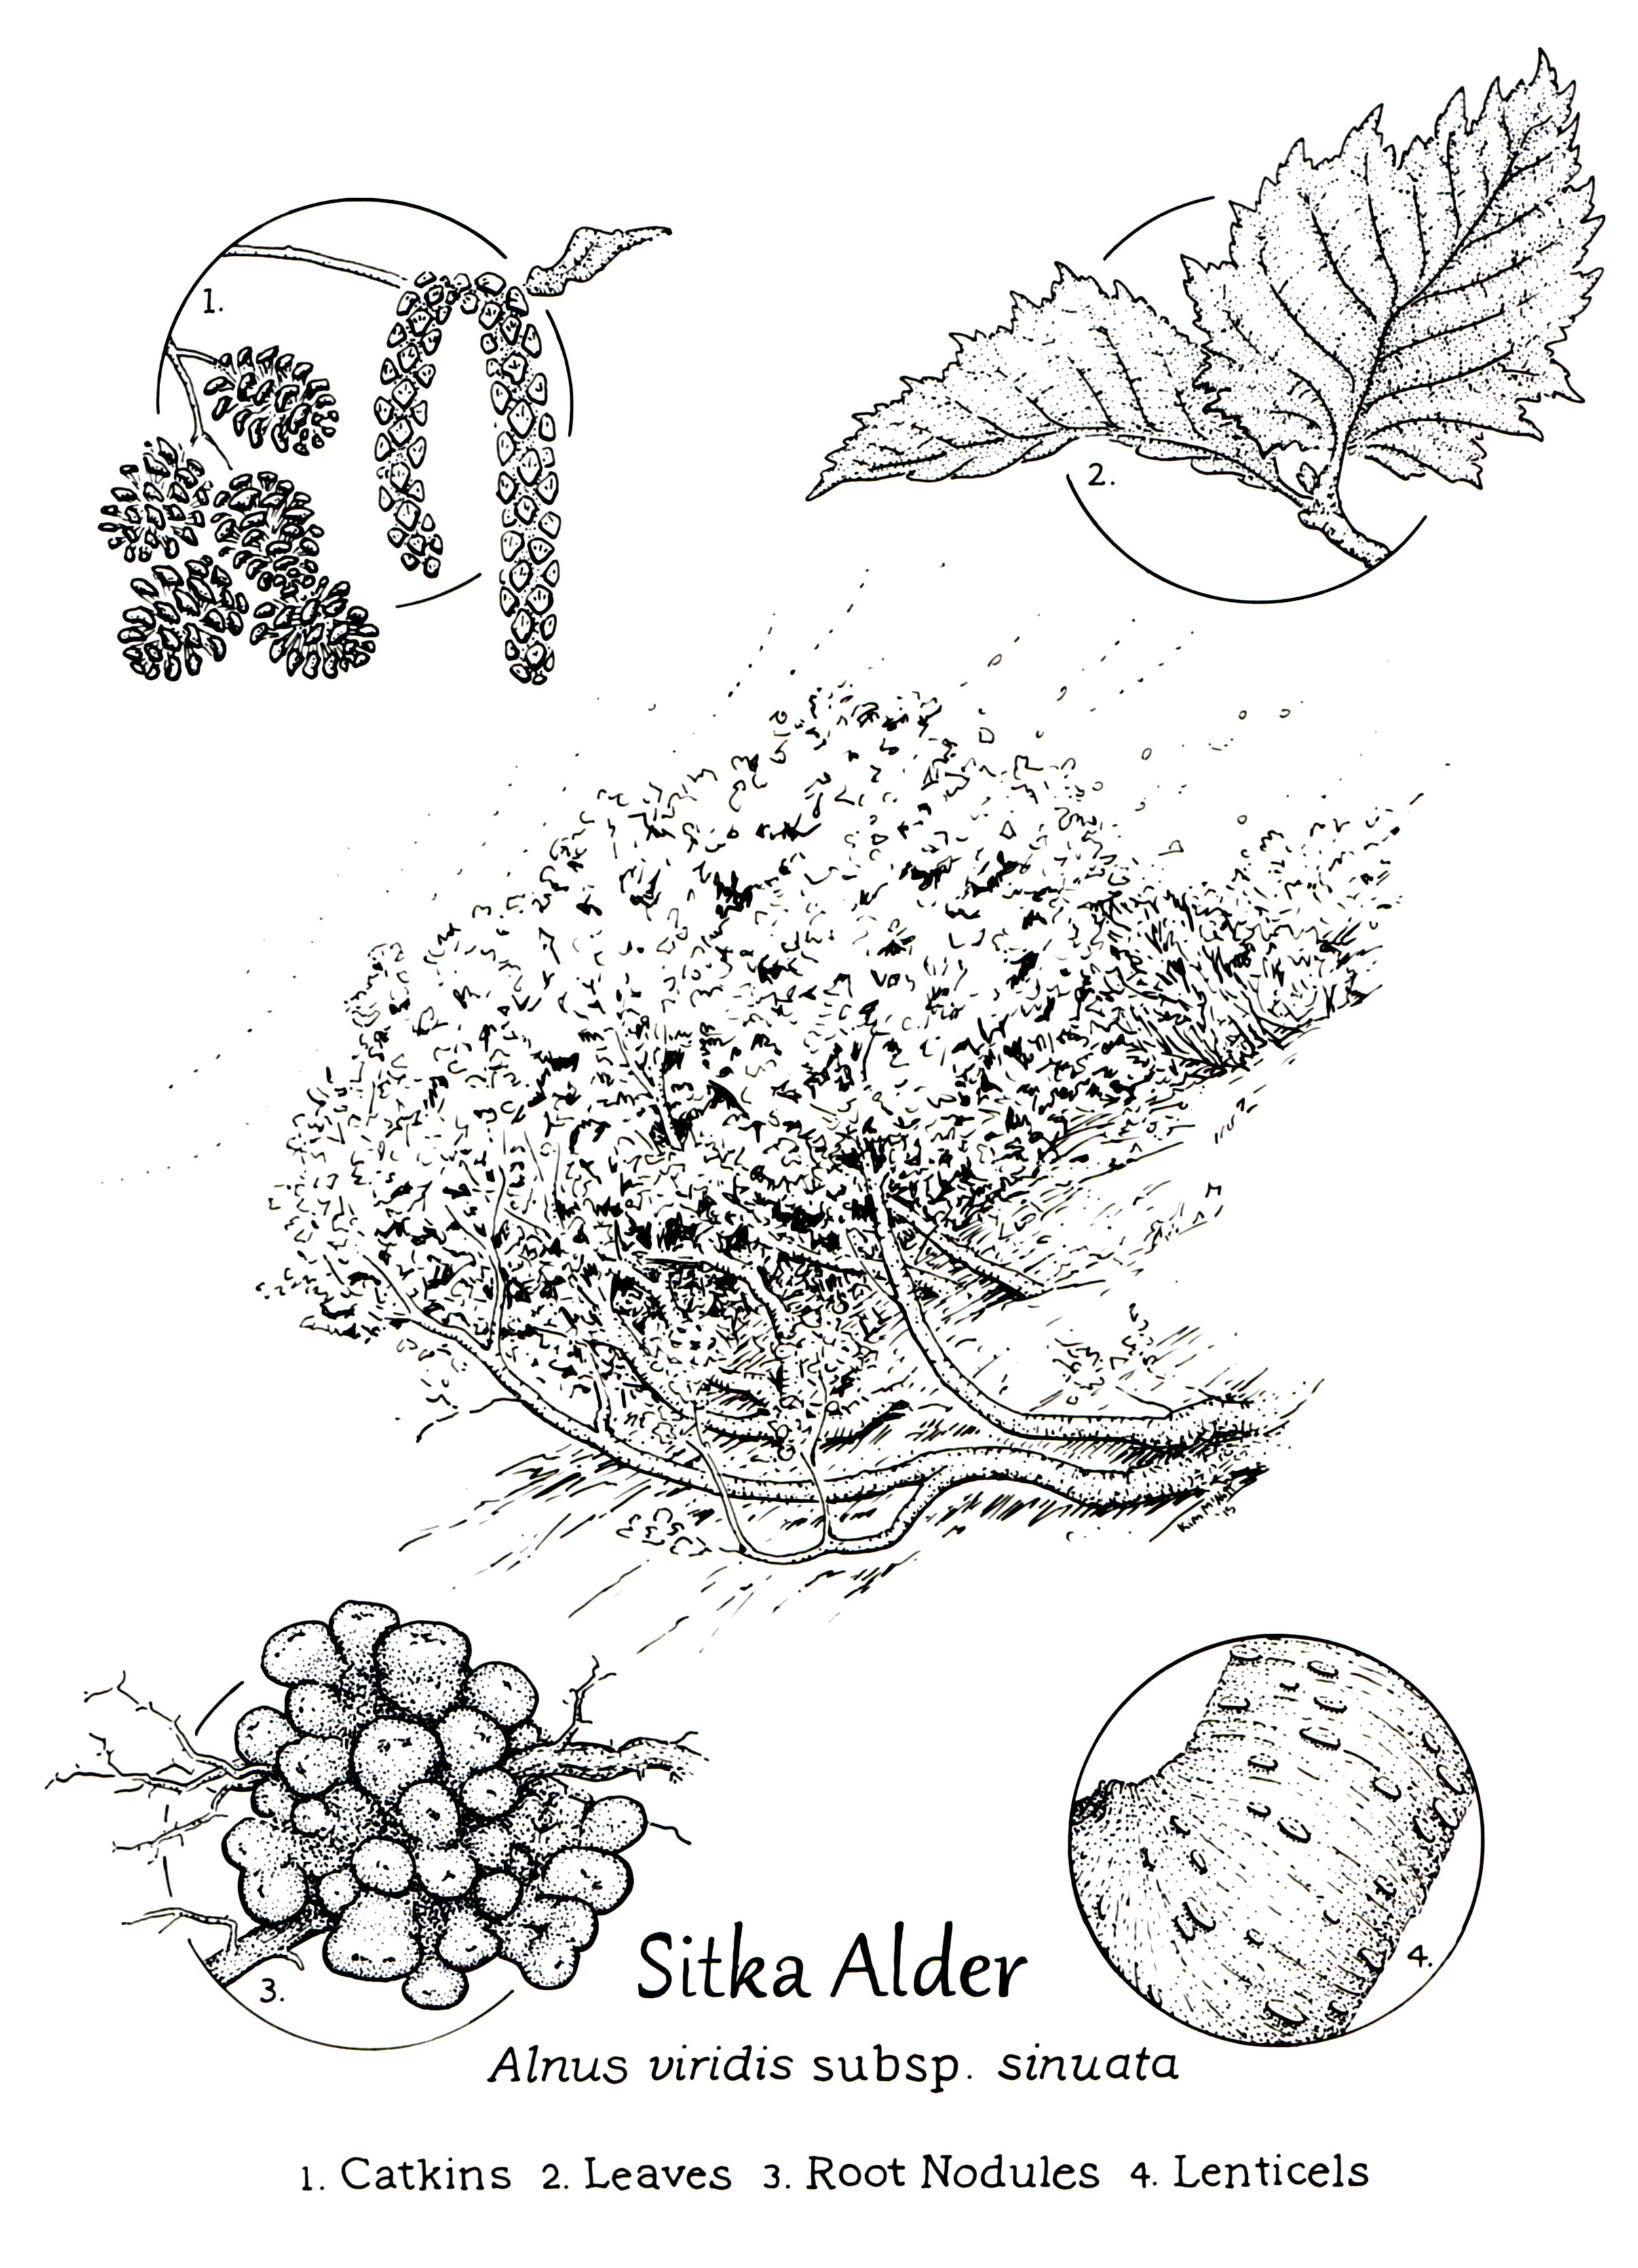 Sitka Alder, Alnus viridis drawing, alder drawing, root nodules, nitrogen-fixer, nitrogen fixing, Alnus drawing, alder illustration